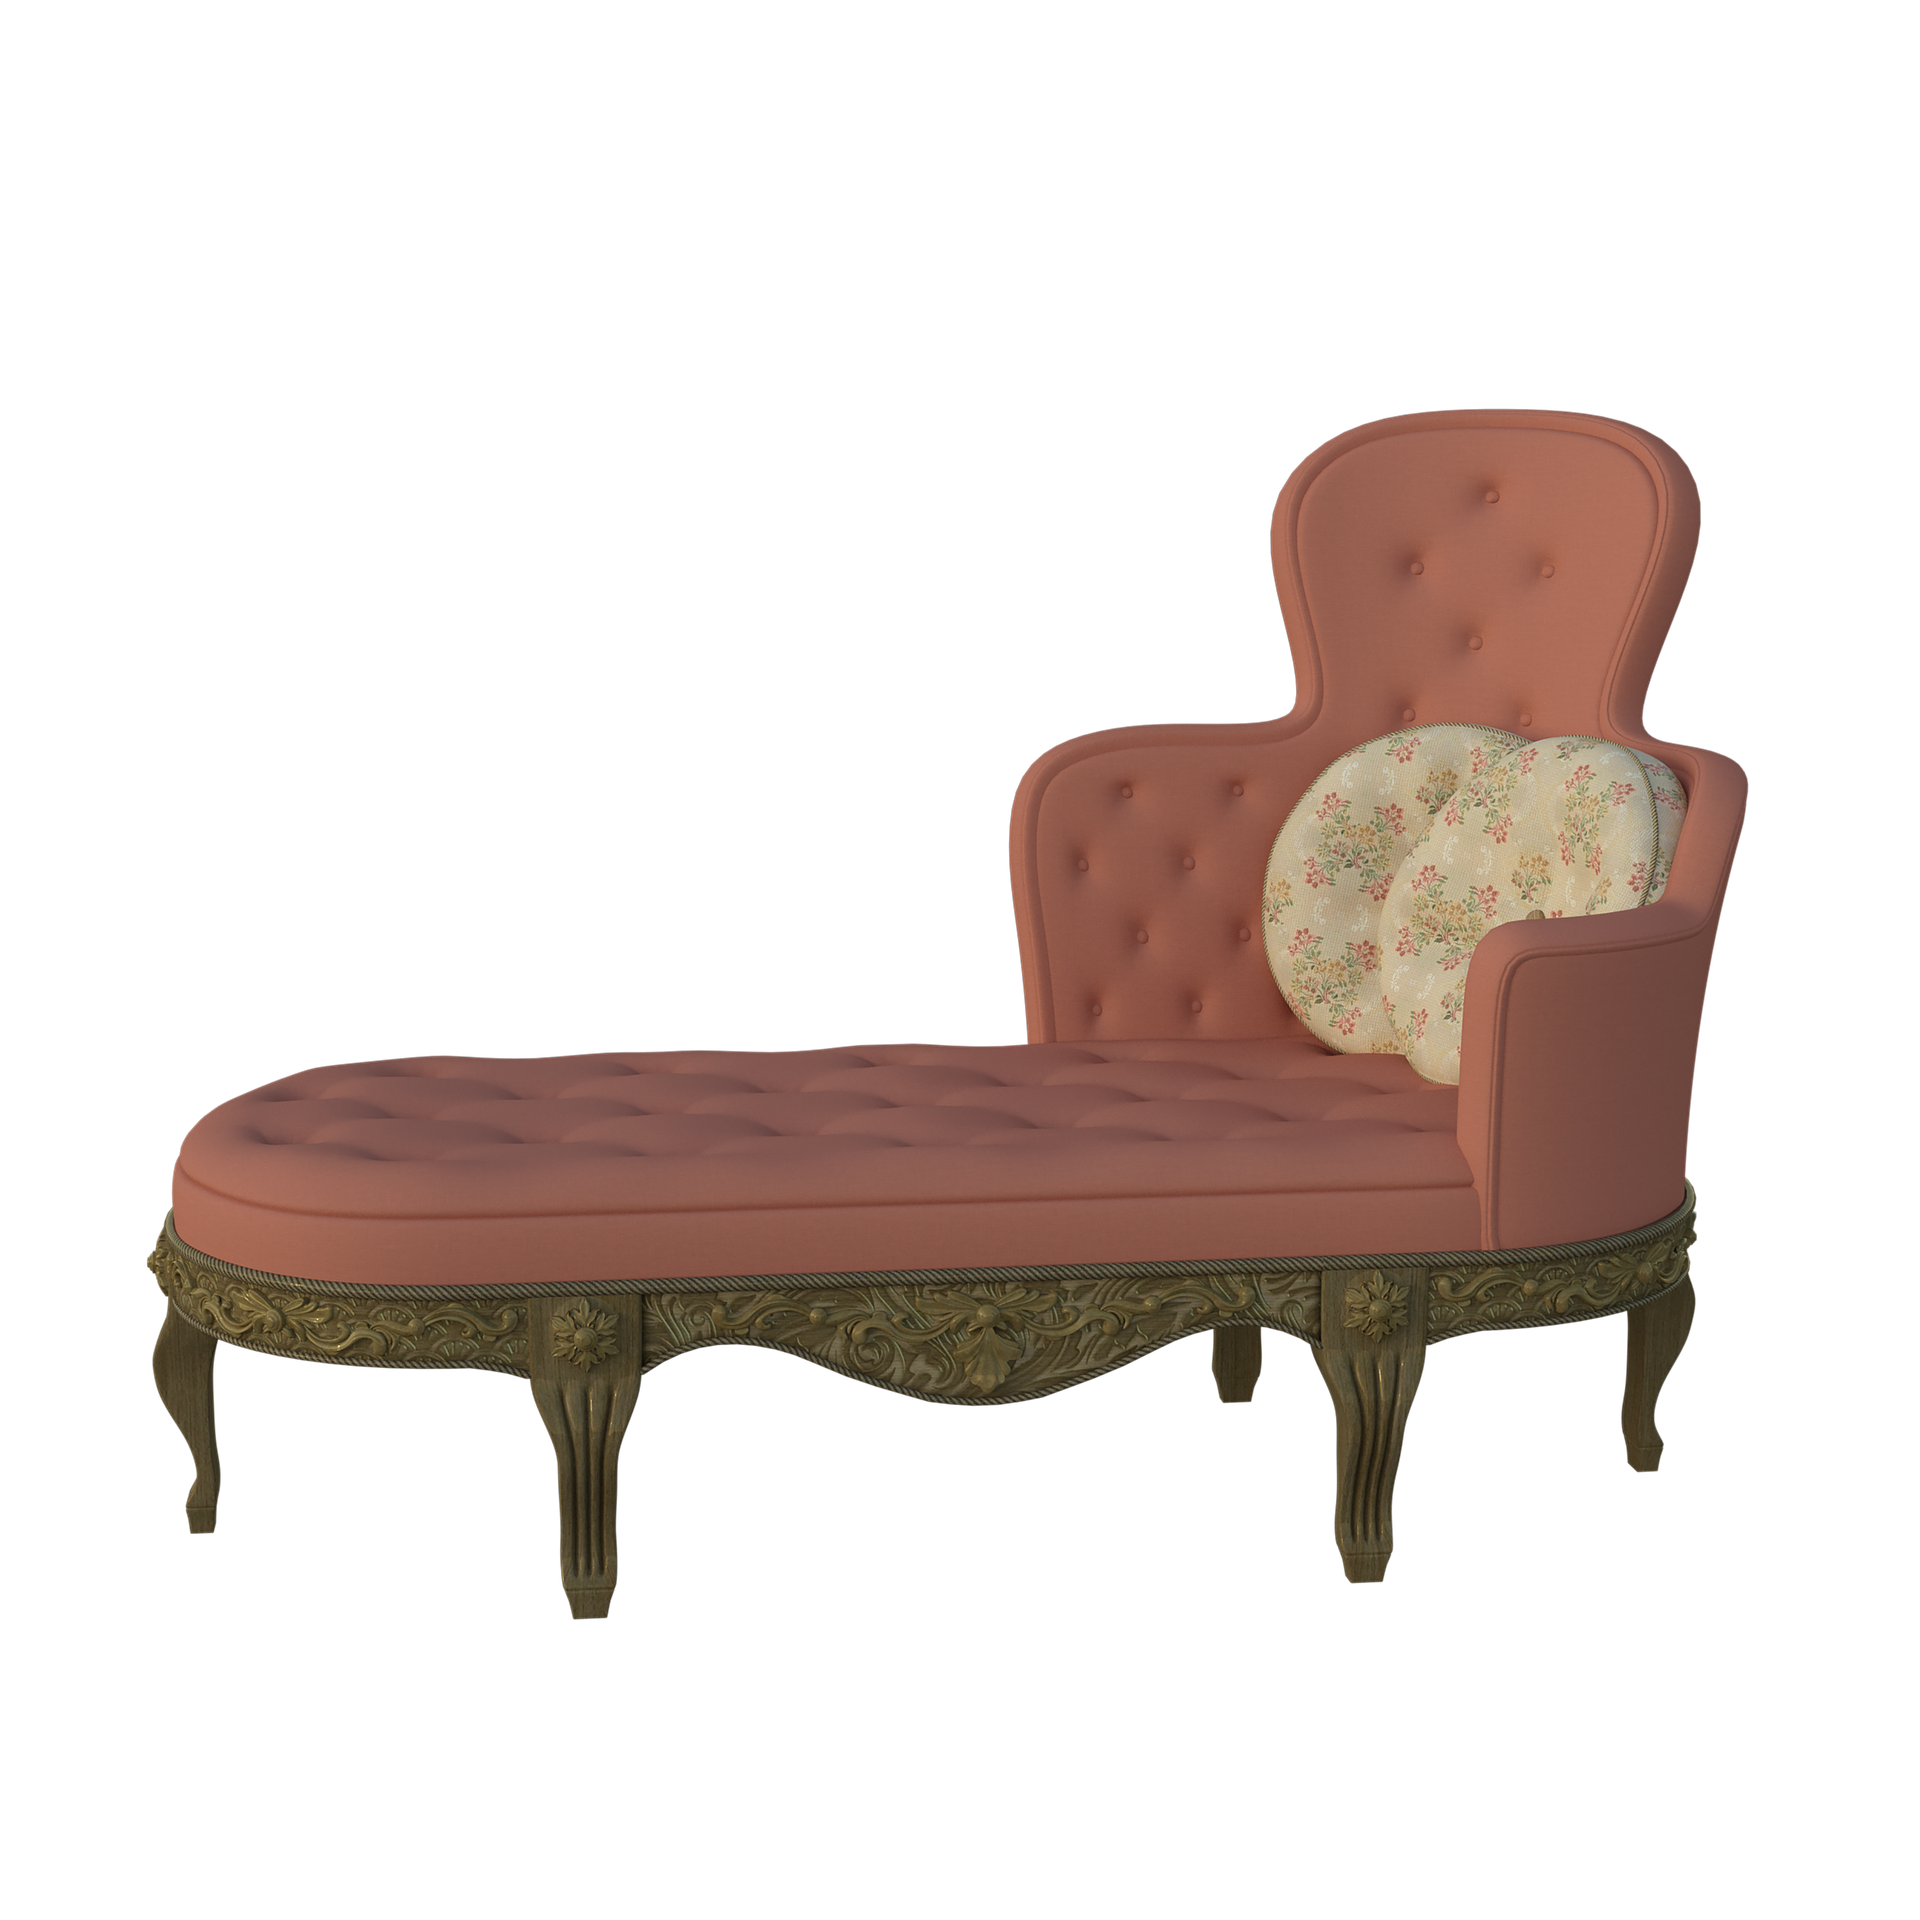 Prime The Fainting Couch Literally Literary Medium Unemploymentrelief Wooden Chair Designs For Living Room Unemploymentrelieforg